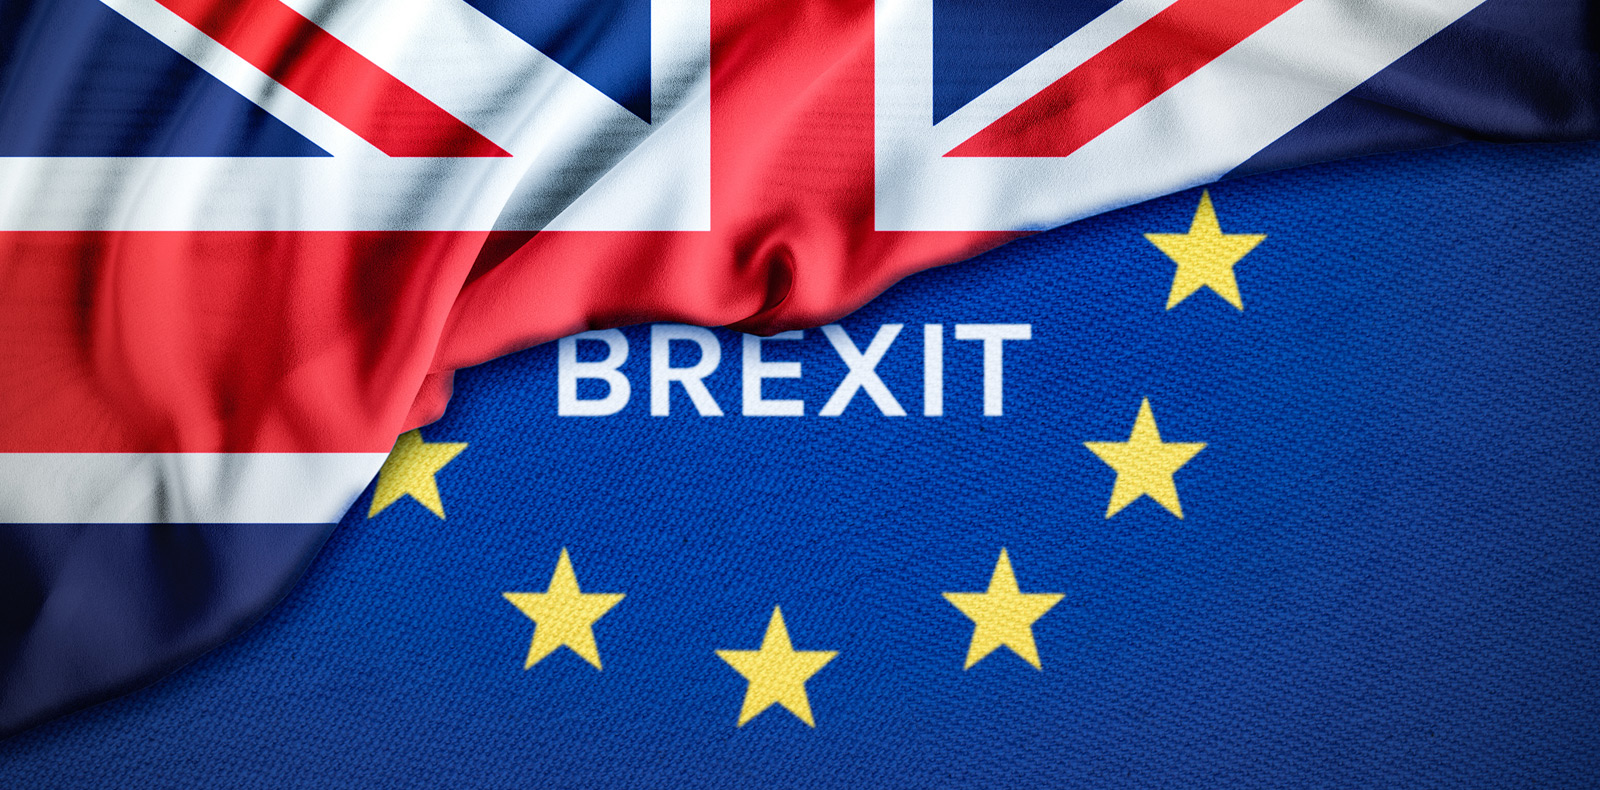 This week could prove volatile for sterling as Brexit negotiations restart on the Tuesday and key UK economic data is released throughout the week.